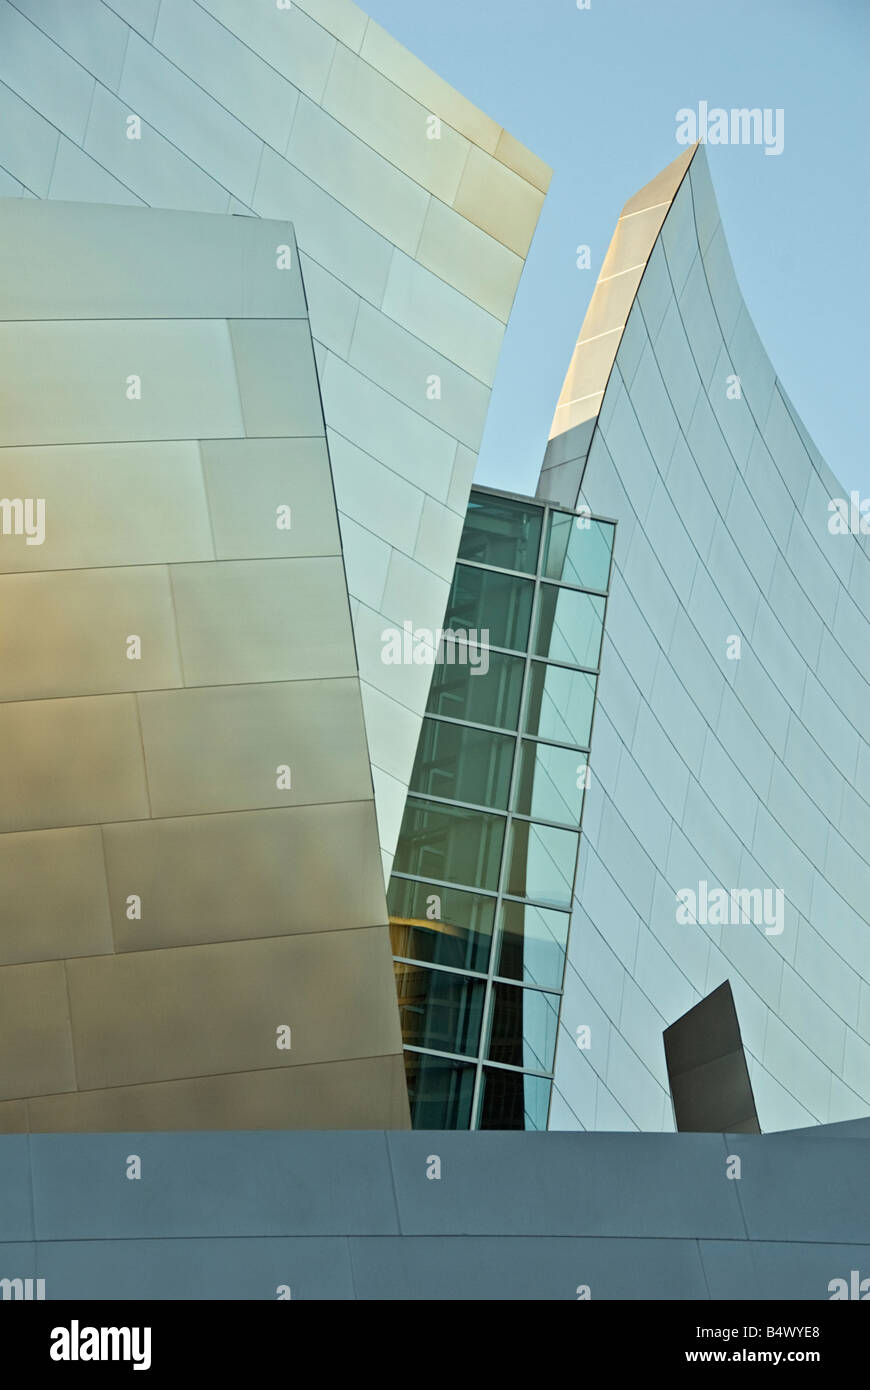 The Walt Disney Concert Hall at 111 South Grand Avenue in Downtown Los Angeles, California Los Angeles Music Center - Stock Image